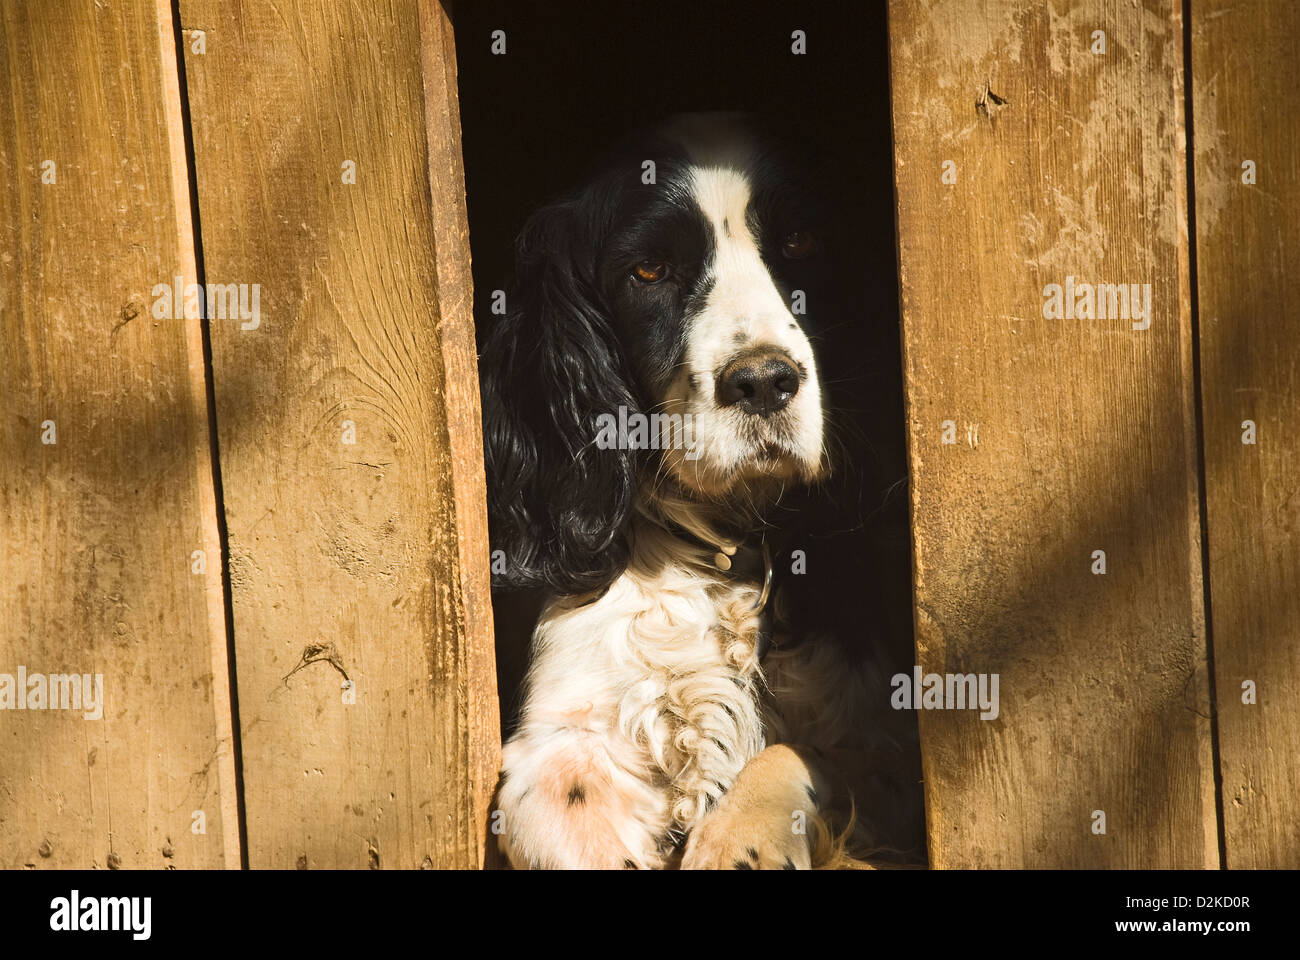 Black and white hunting dog chained up in dog kennel - Stock Image